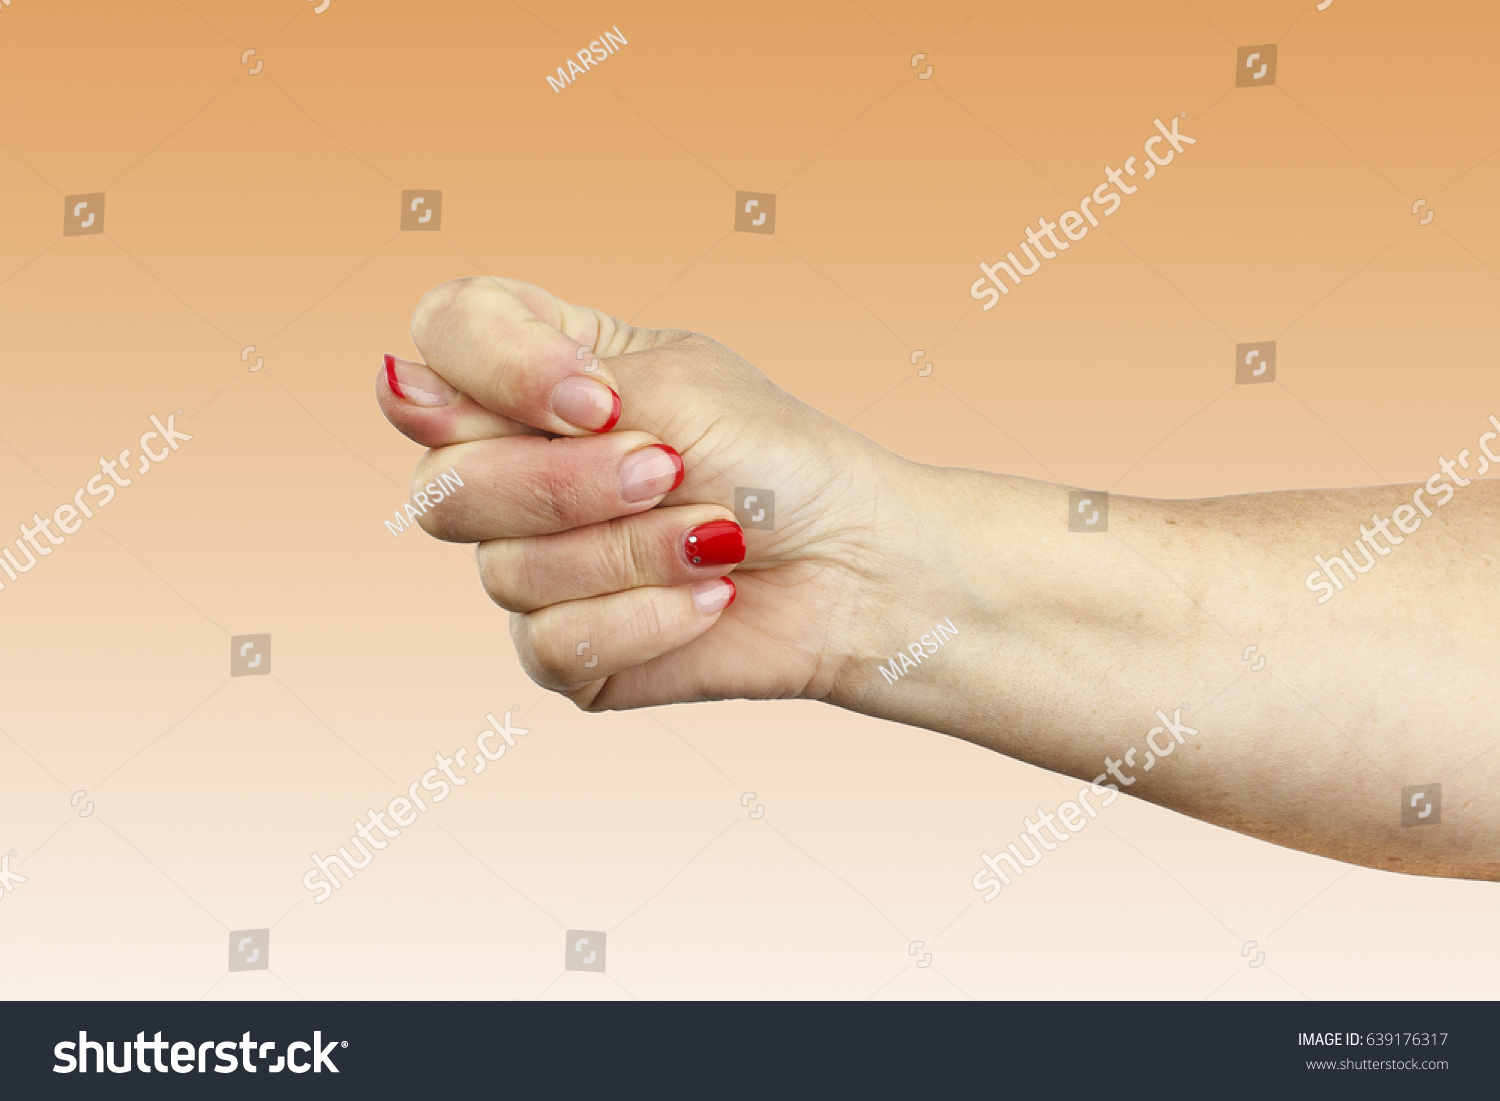 Women age hand shows fico isolated stock photo 639176317 shutterstock women age hand shows the fico isolated on orange background symbol of greed and avarice biocorpaavc Gallery